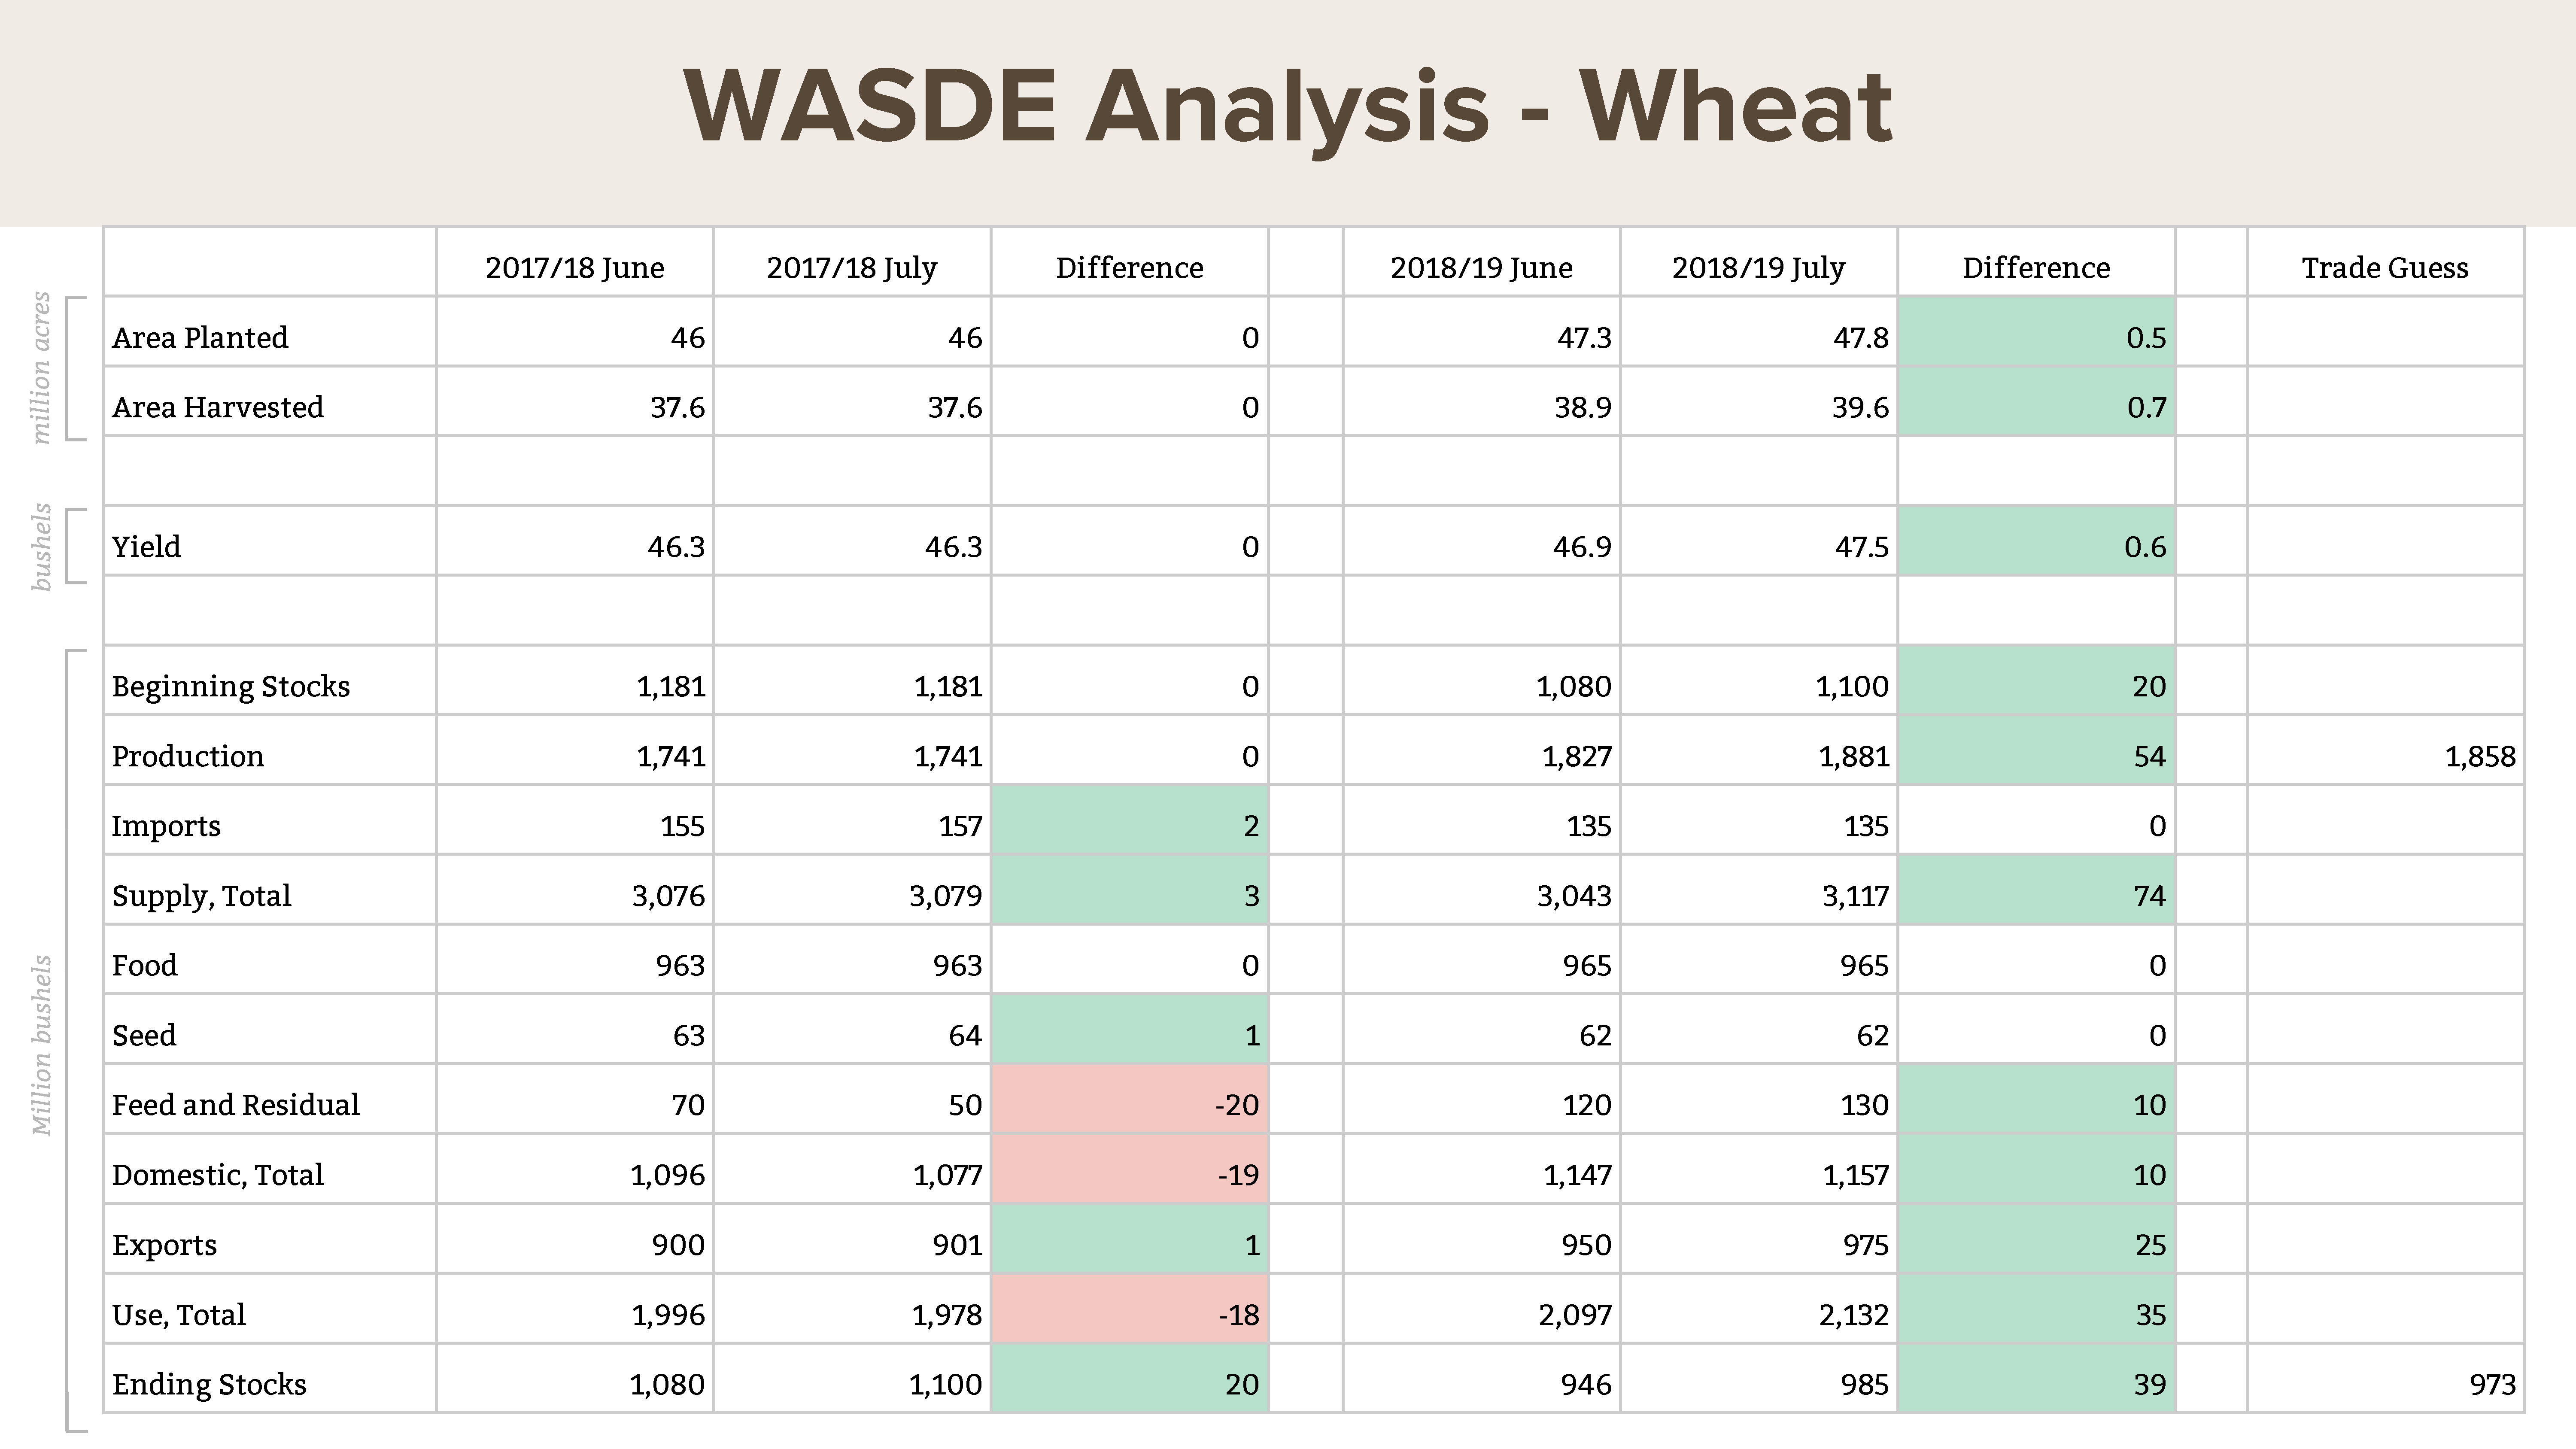 July WASDE: estimated U.S. wheat acres planted, harvested, and yield